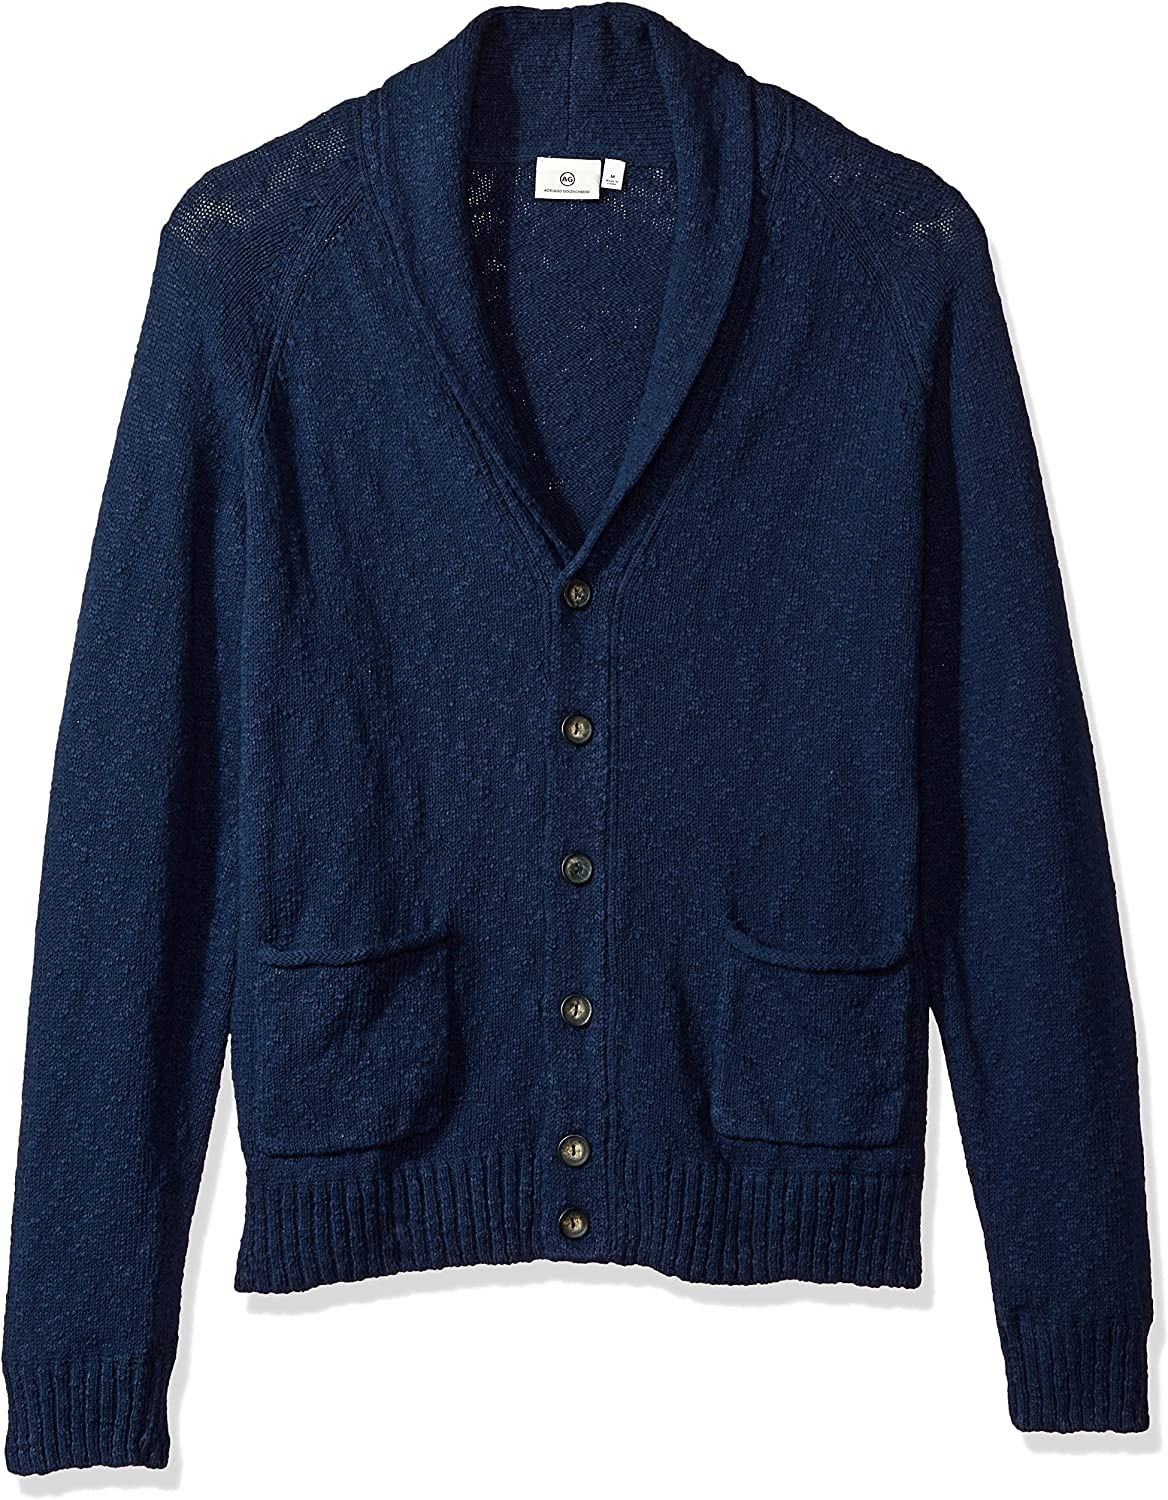 Image of Active Shirts & Tees AG Adriano Goldschmied Men's Oslo Shawl Slub Cotton Sweater Cardigan